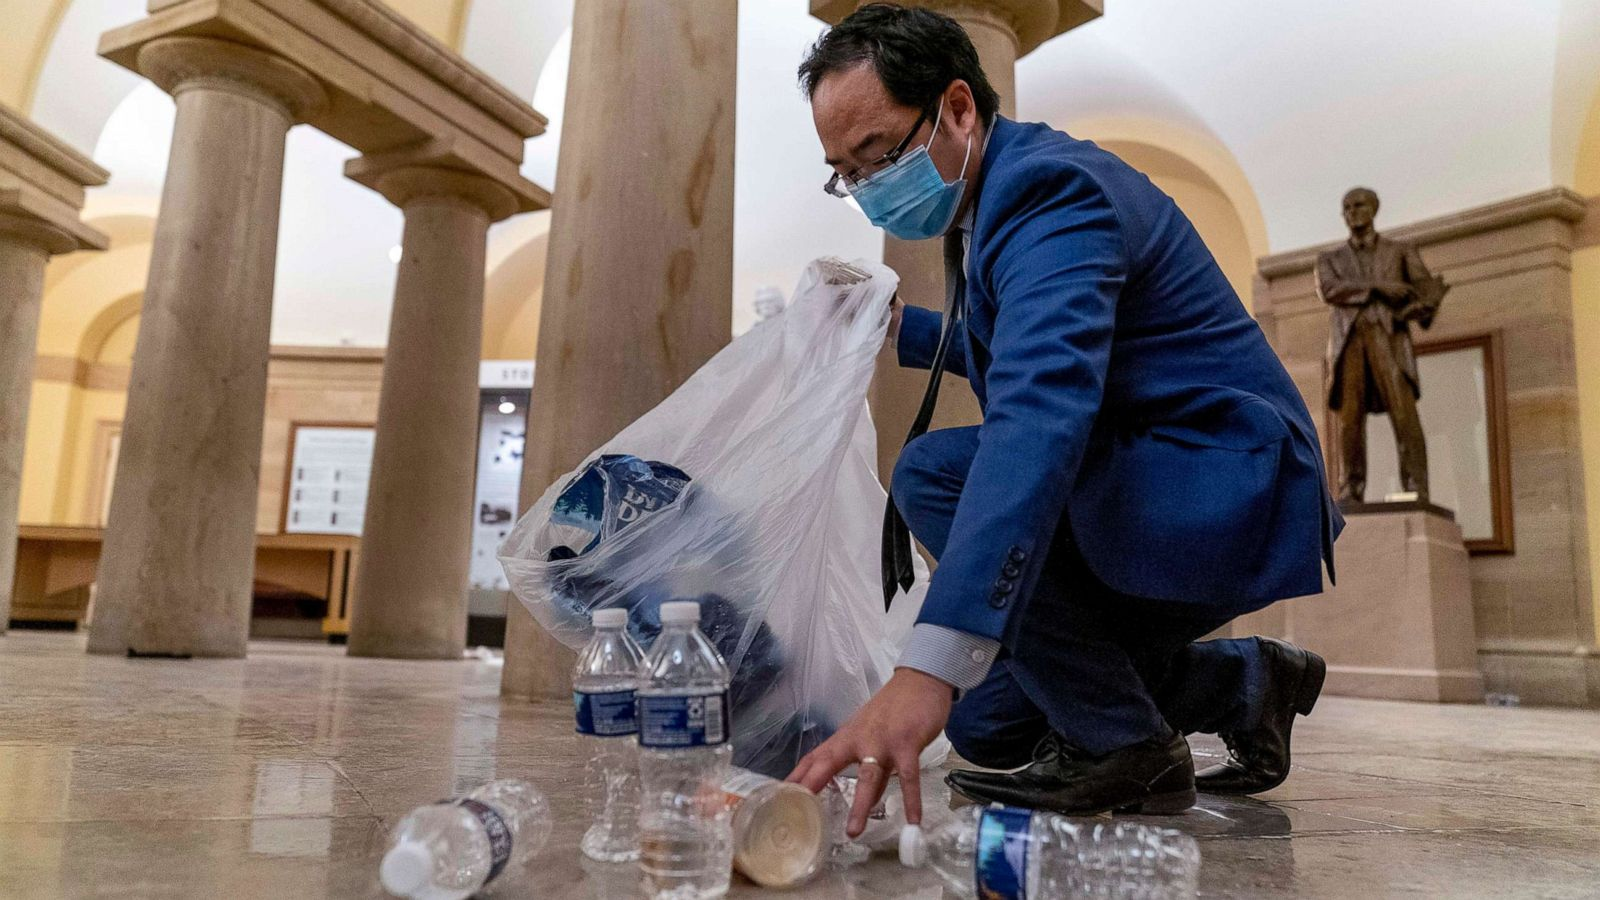 New Jersey Rep. Andy Kim helps clean up Capitol building after breach - ABC News